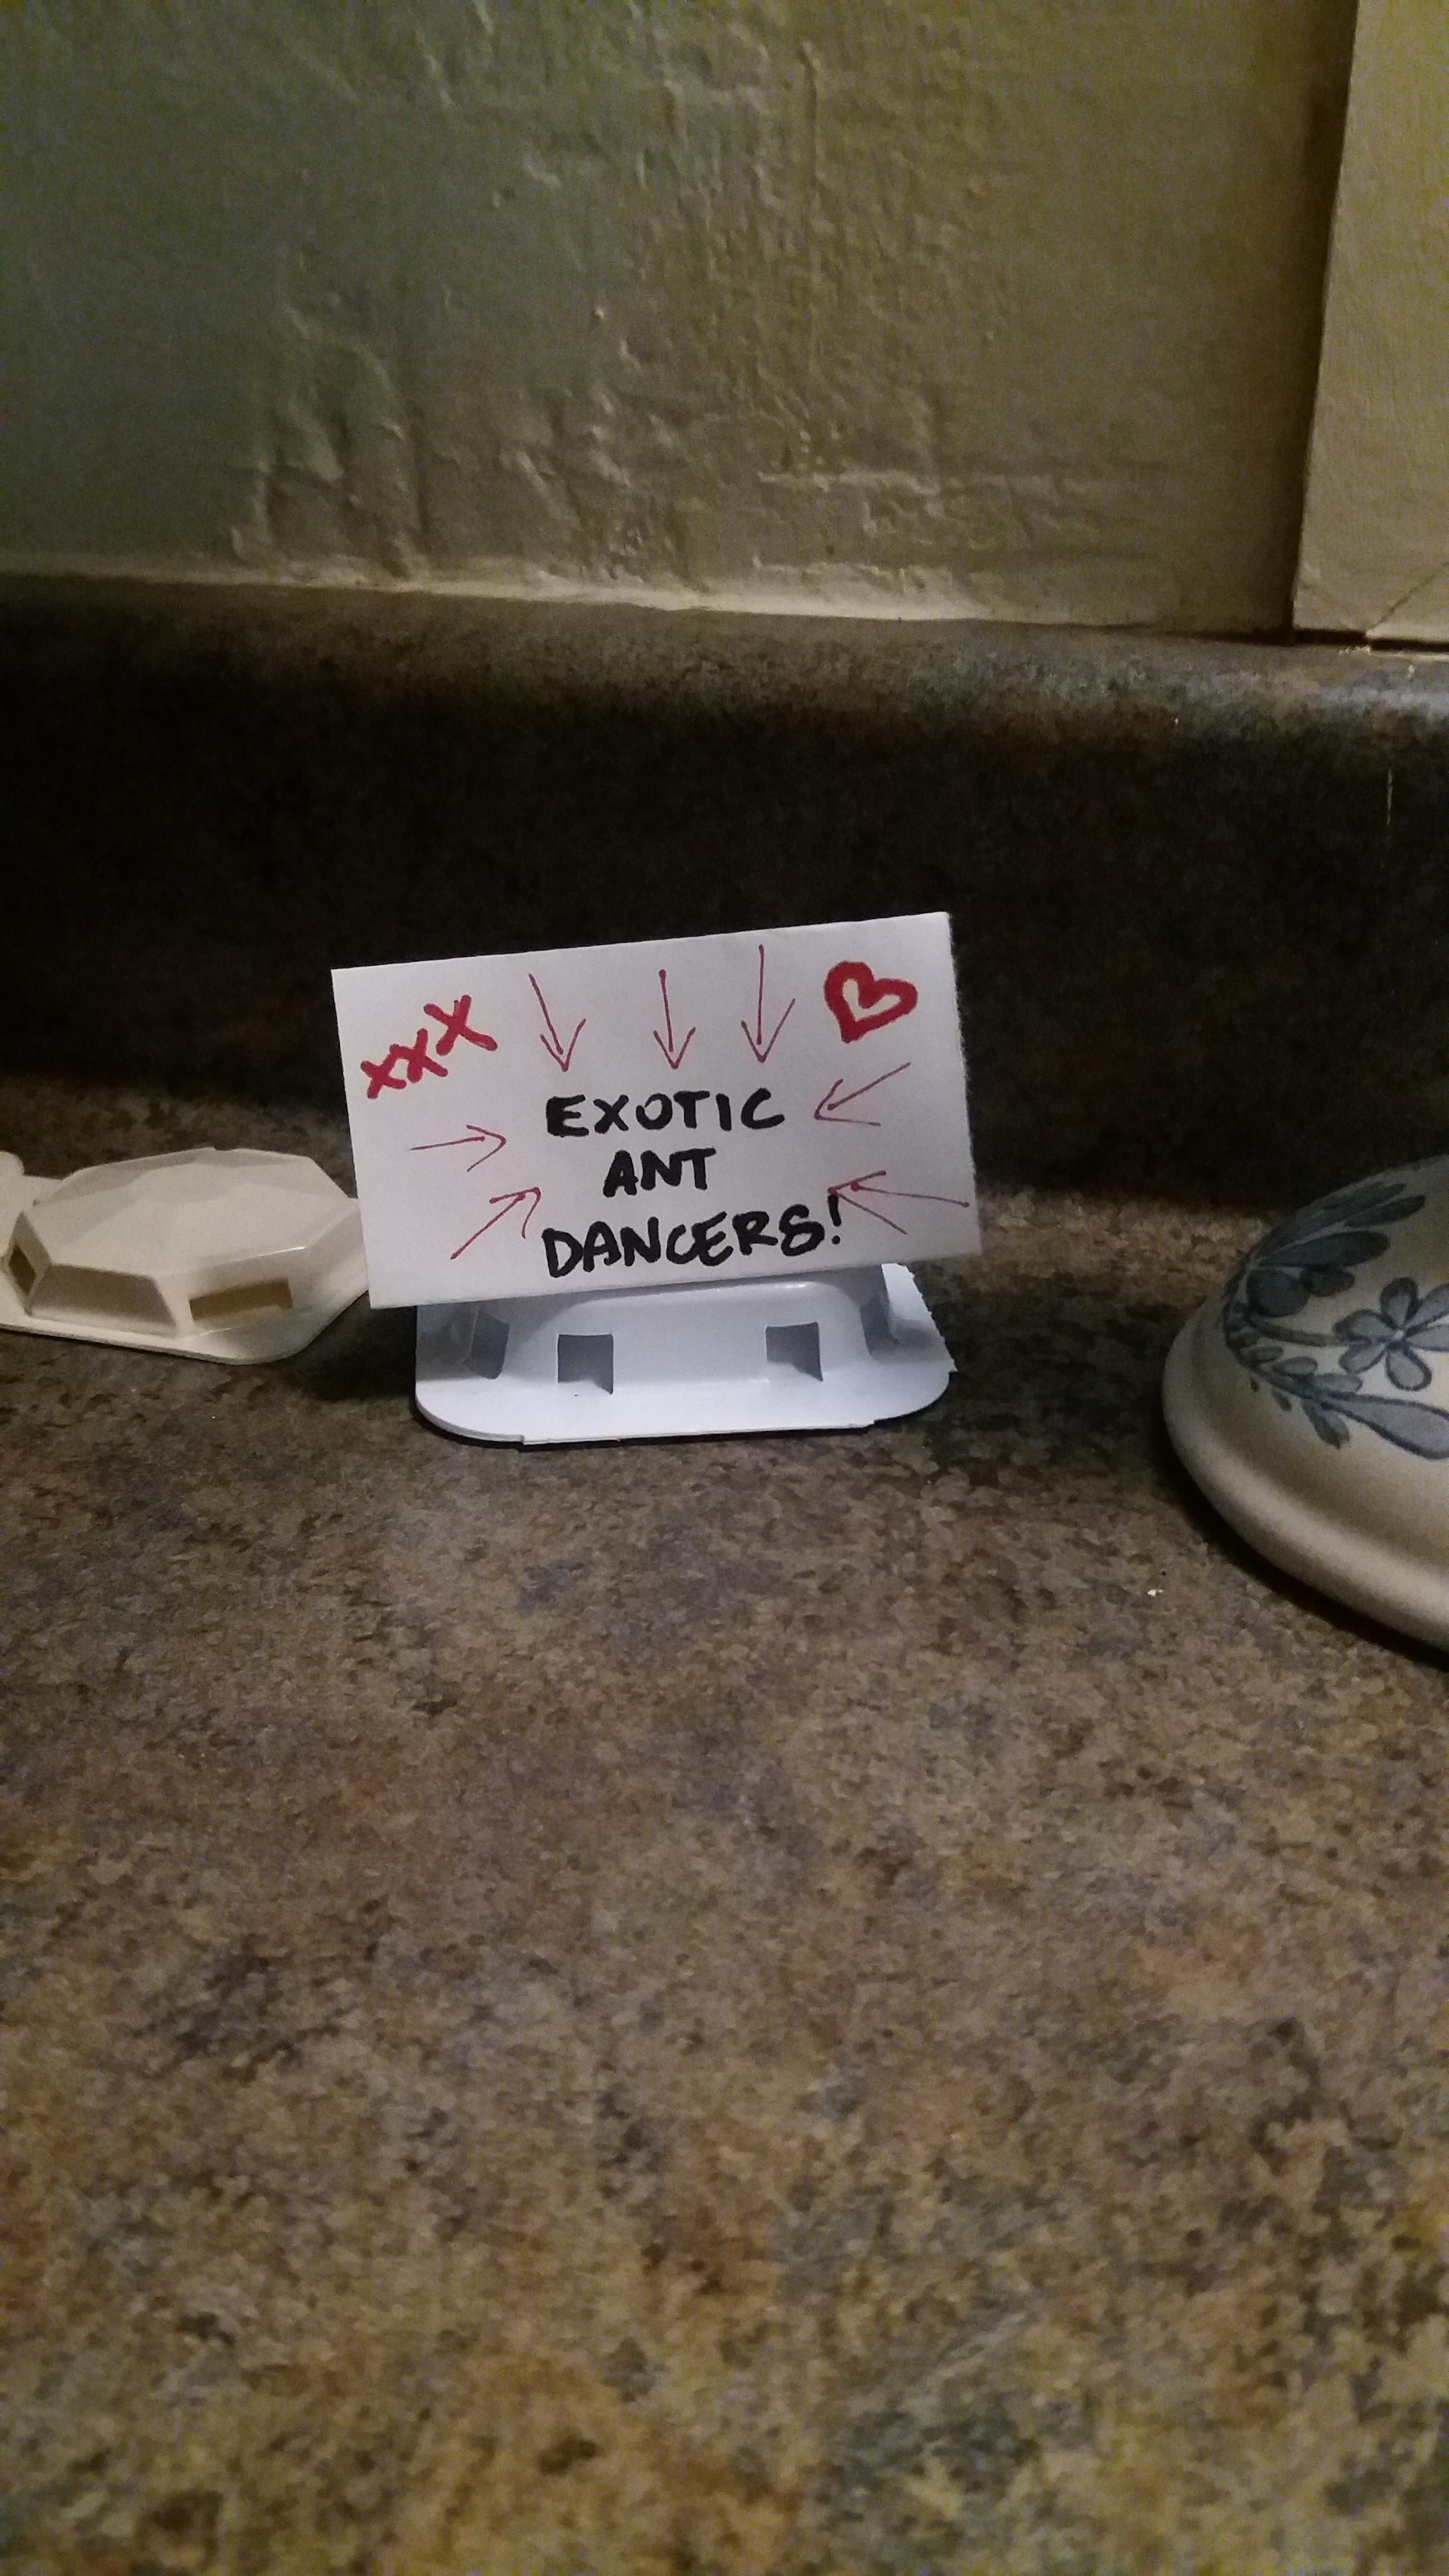 We have an ant problem. The husband is trying to make the ant traps more appealing.